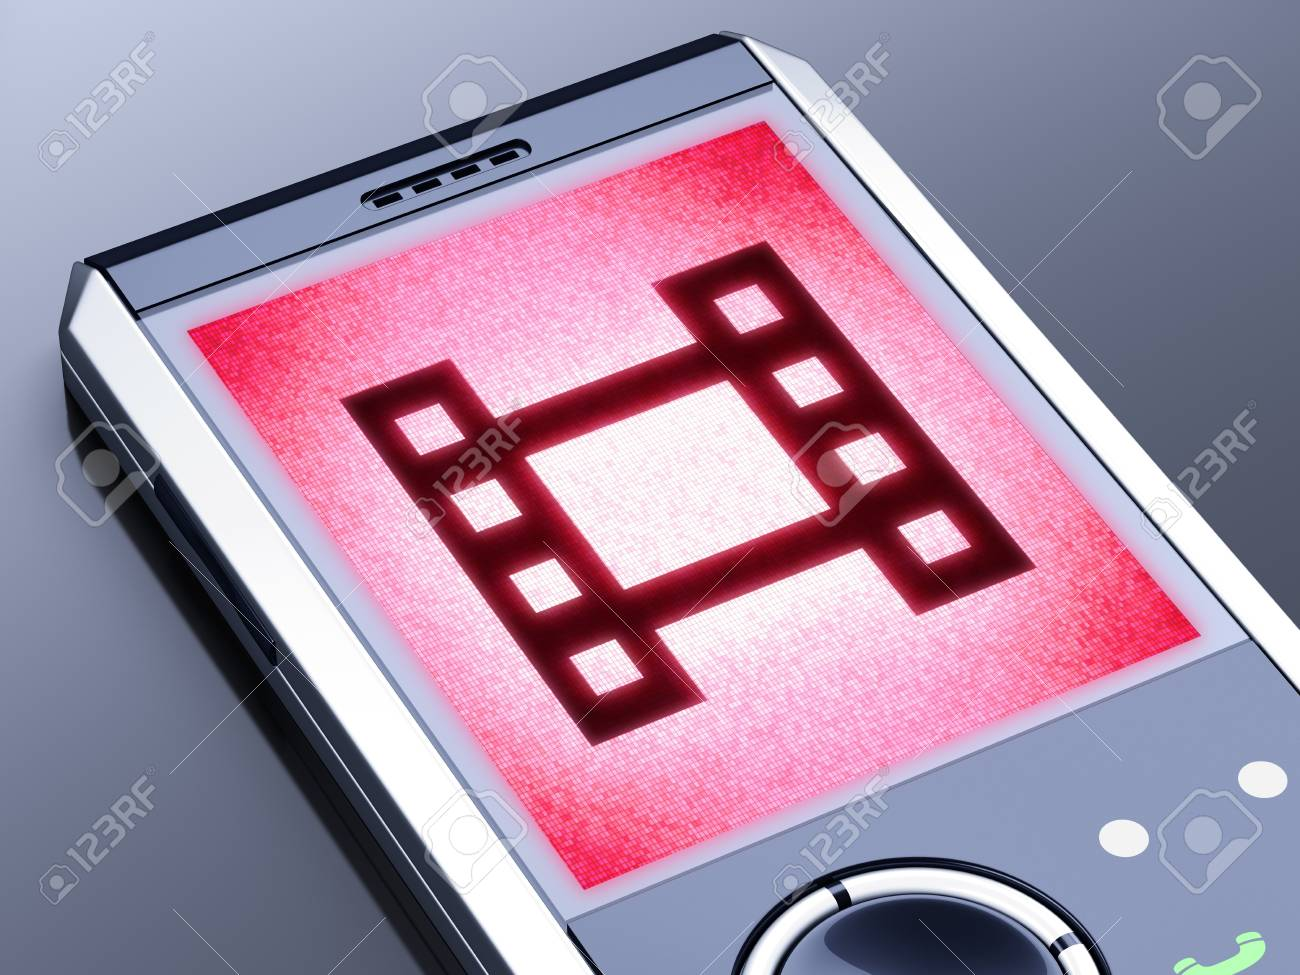 It is my own design of mobile phone, therefore you can use this picture for commercial purposes. Stock Photo - 10923082